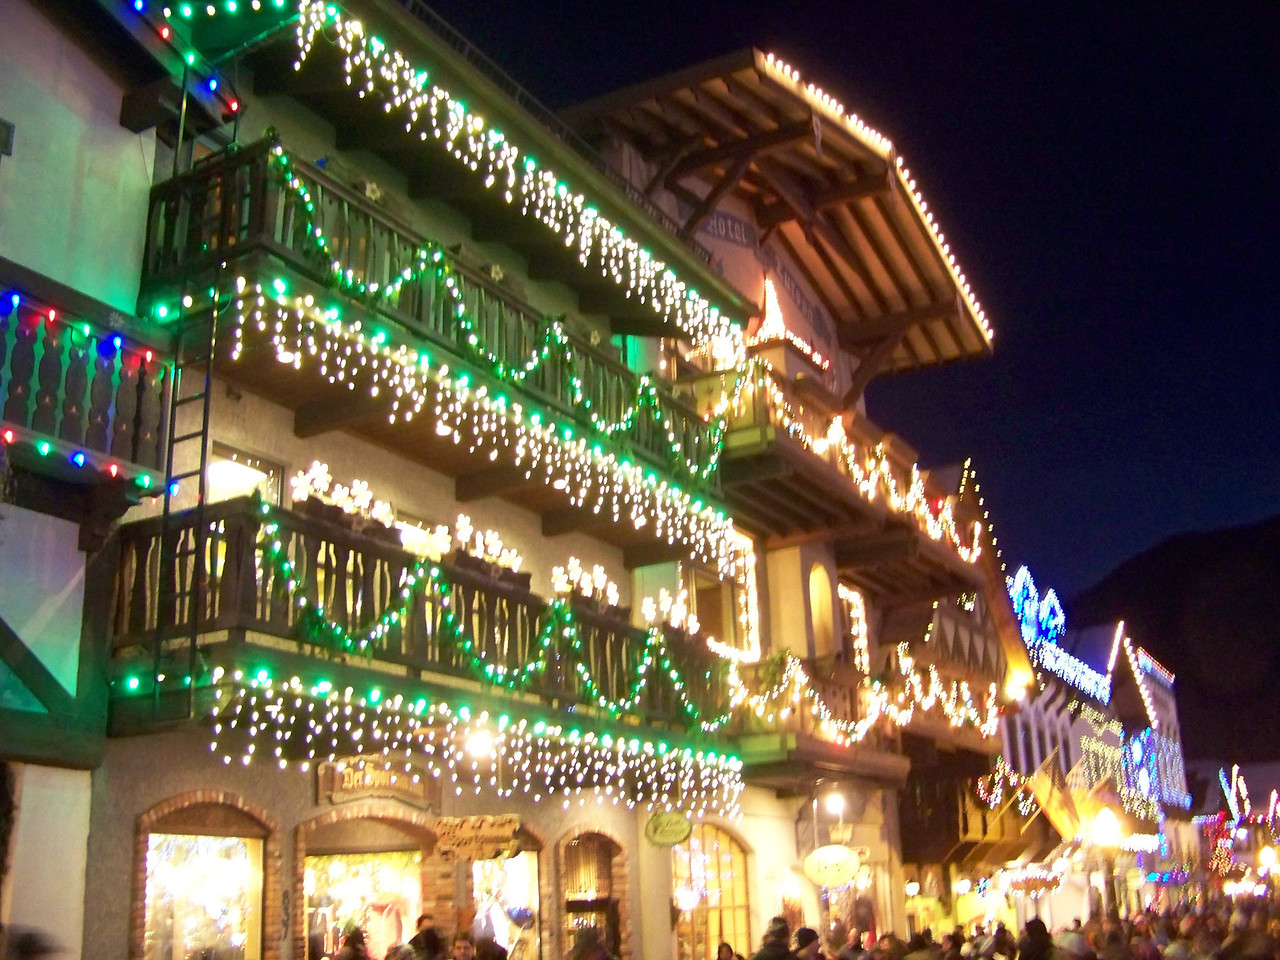 """Christmas lights on the shops lining Front Street. [Leavenworth, WA - December 2013 - <b><a target=""""_new"""" href=""""http://youtu.be/NqCqDCOY_tc"""">Watch my video here</a></b>]"""